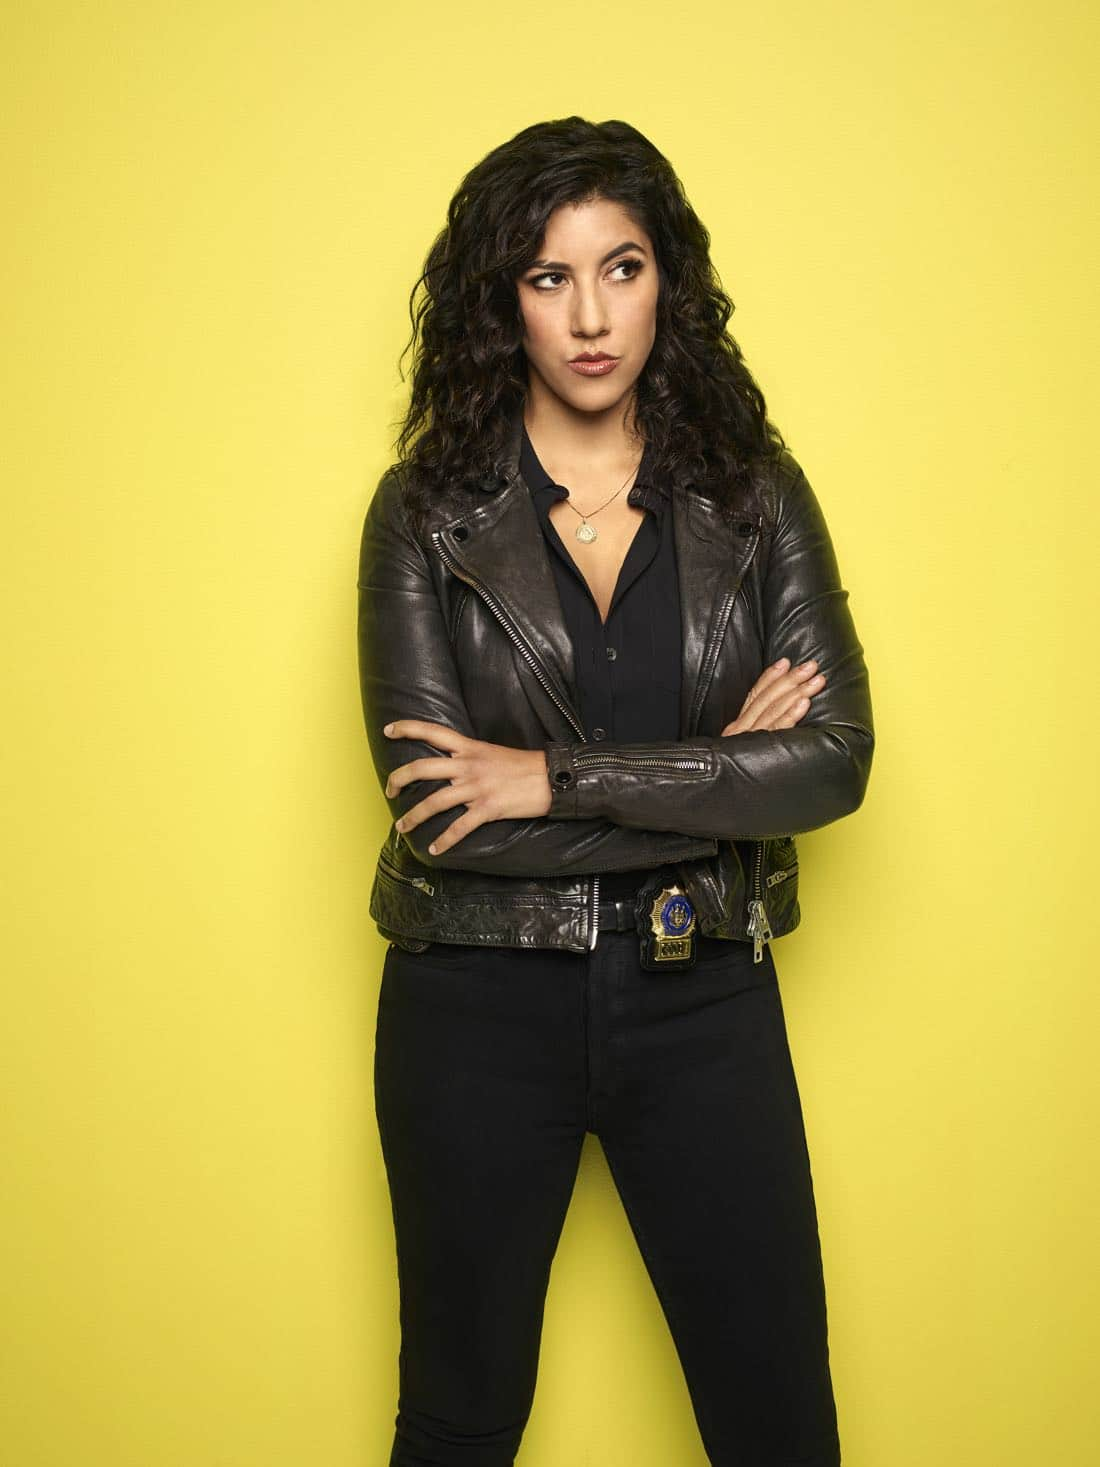 BROOKLYN NINE-NINE: Stephanie Beatriz as Detective Rosa Diaz. BROOKLYN NINE-NINE Season Five premieres Tuesday, Sept. 26 (9:30-10:00 PM ET/PT) on FOX. ©2017 Fox Broadcasting Co. CR: Robert Trachtenberg/FOX